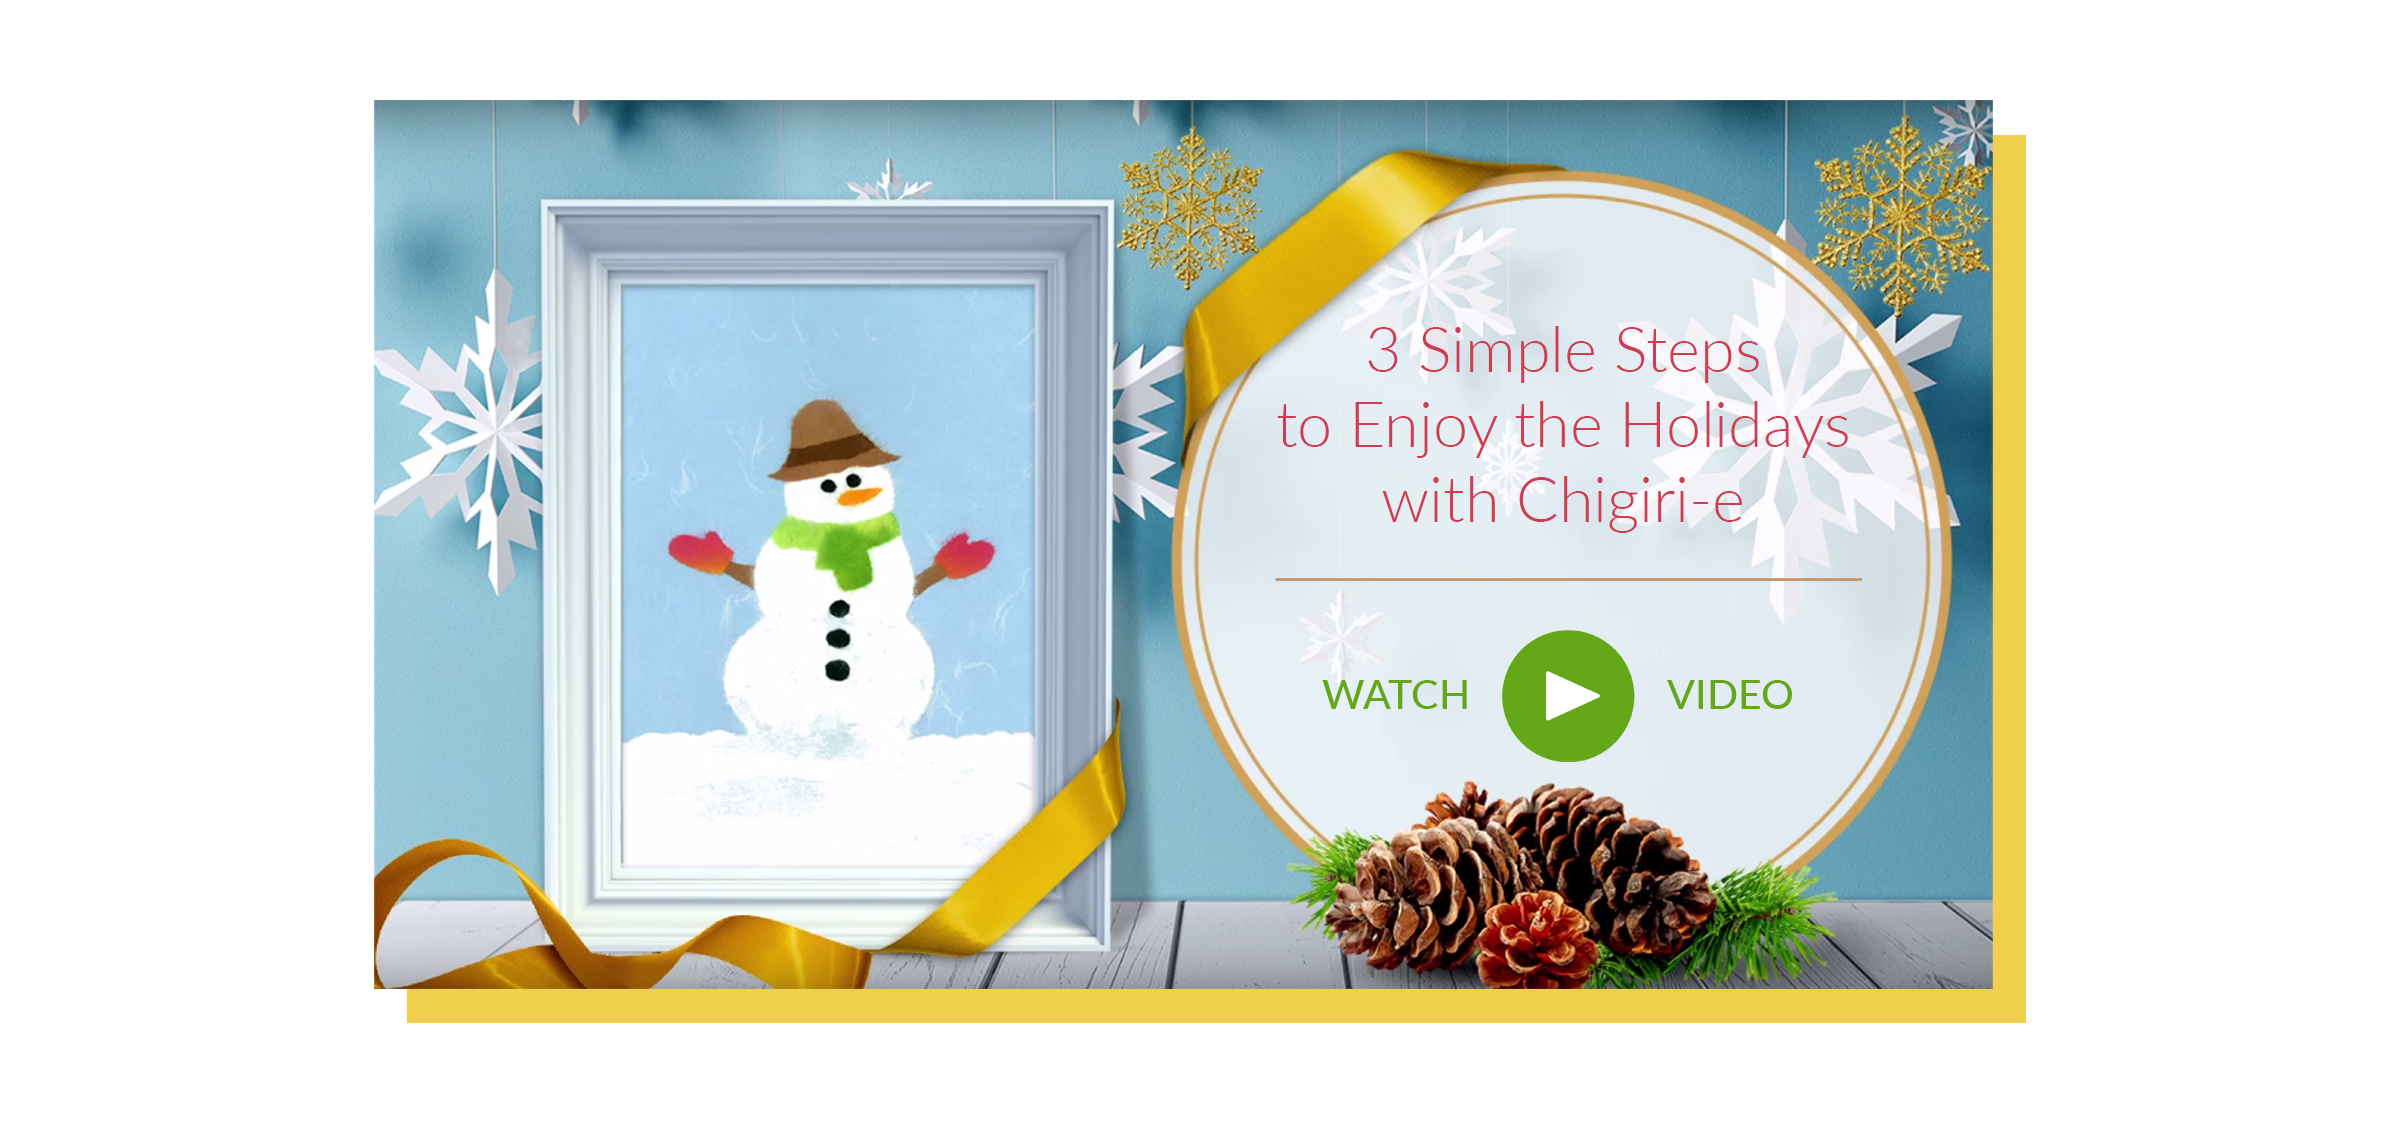 3 Simple Steps to Enjoy the Holidays with Chigiri-e | Watch Video